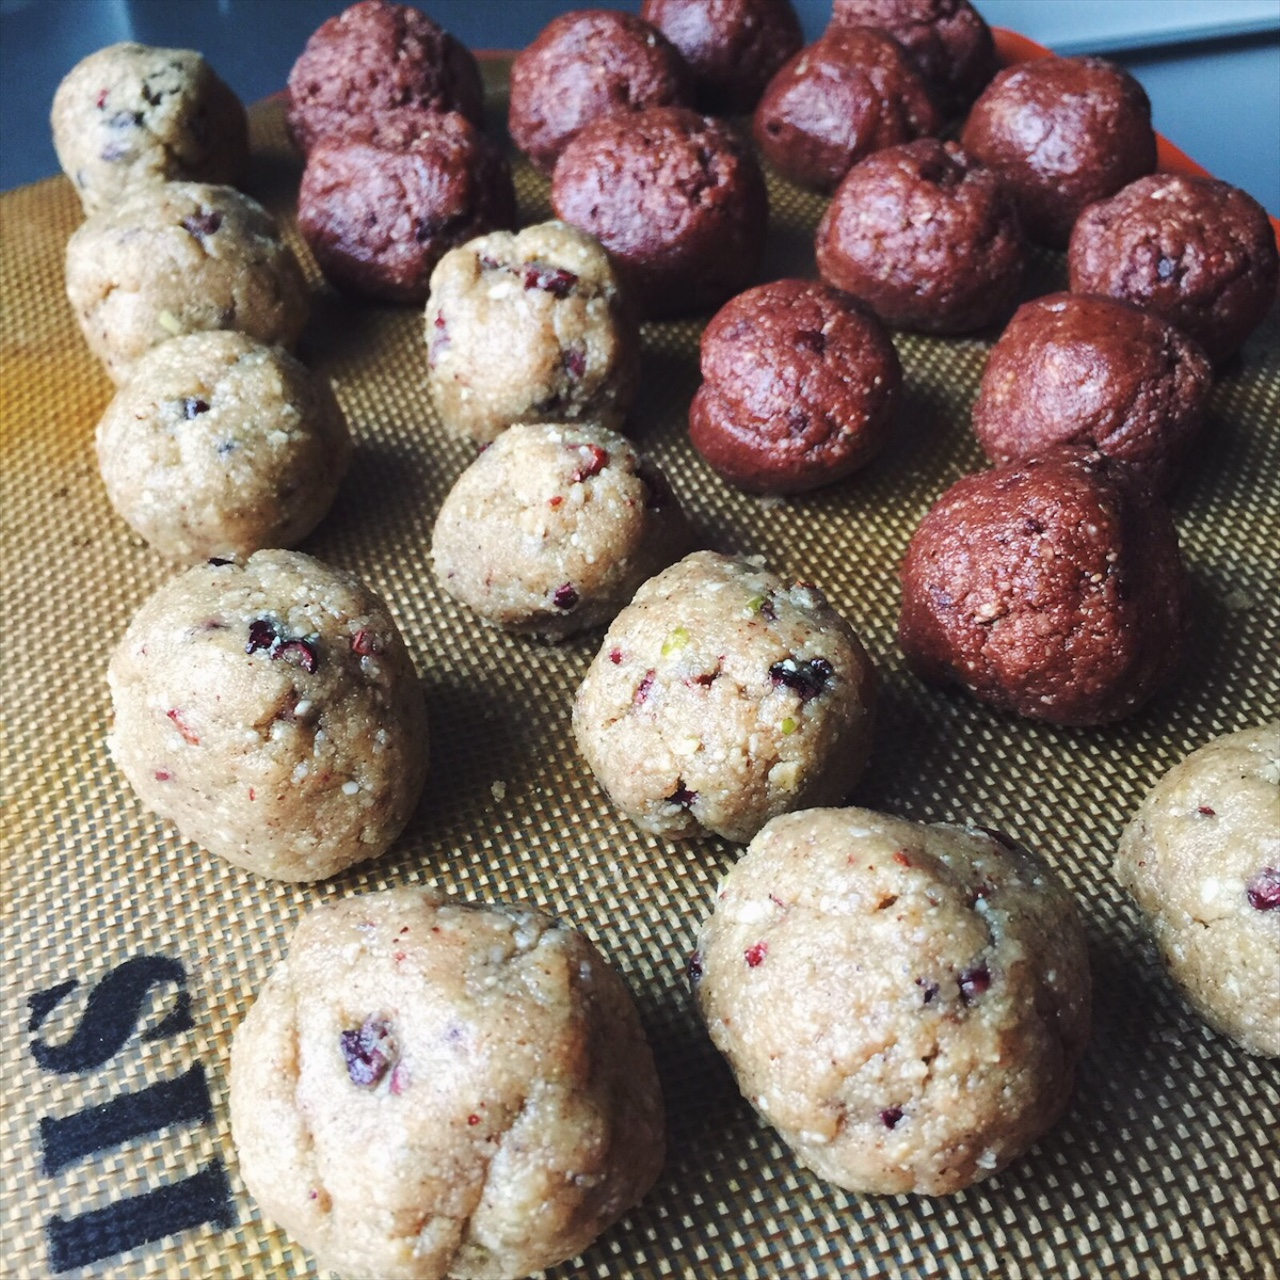 Pre-workout, post-workout, afternoon snack, or breakfast. These balls are so nutricious you can legit have them anytime.